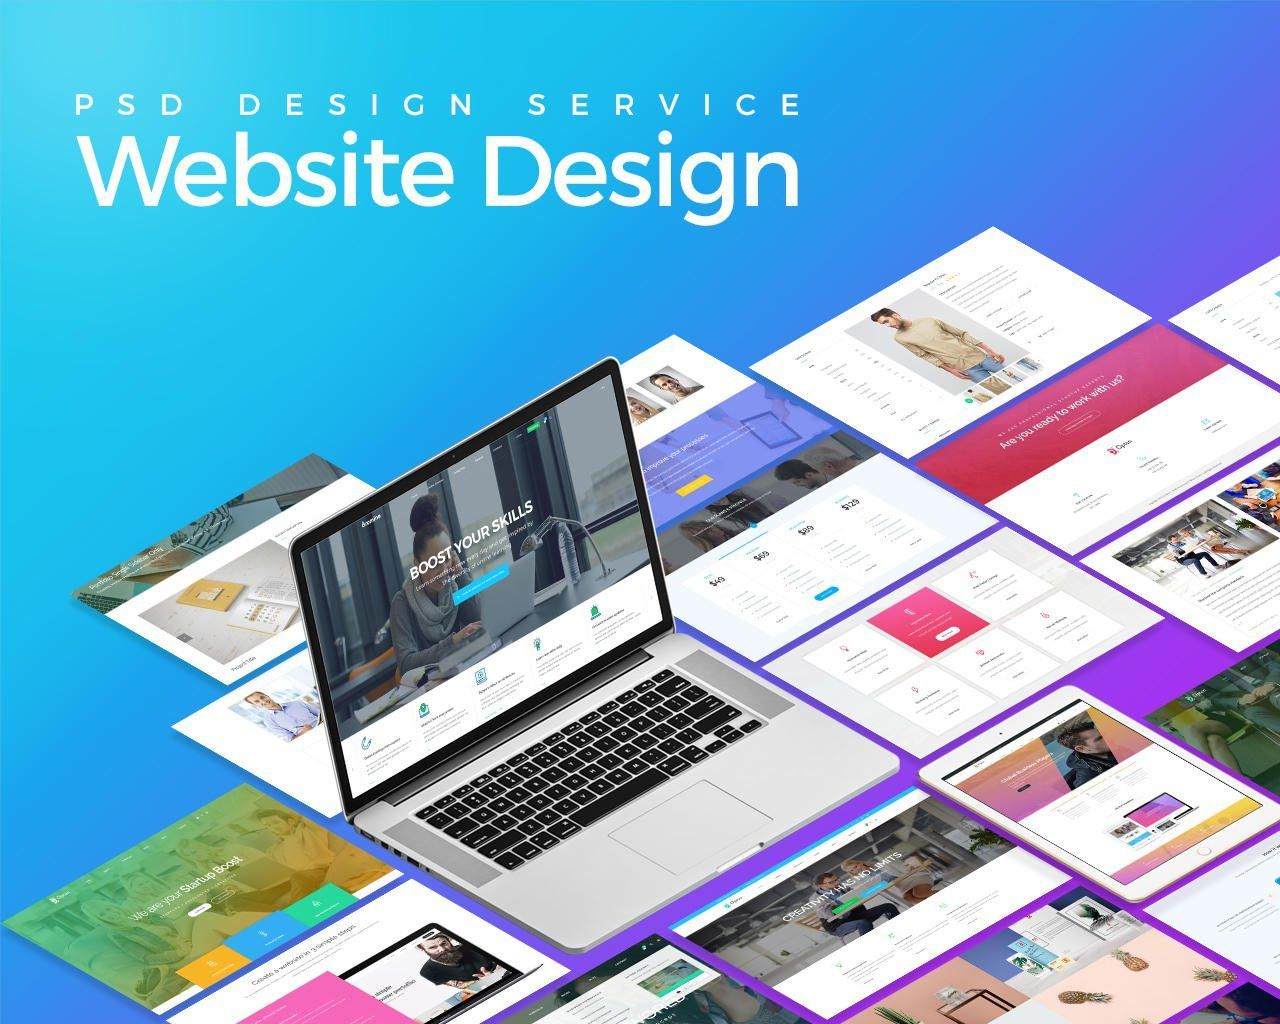 Pin By A Design Partnership On A Design Partnership Tips For Website Design Website Design Services Web Design Services Web Design Company